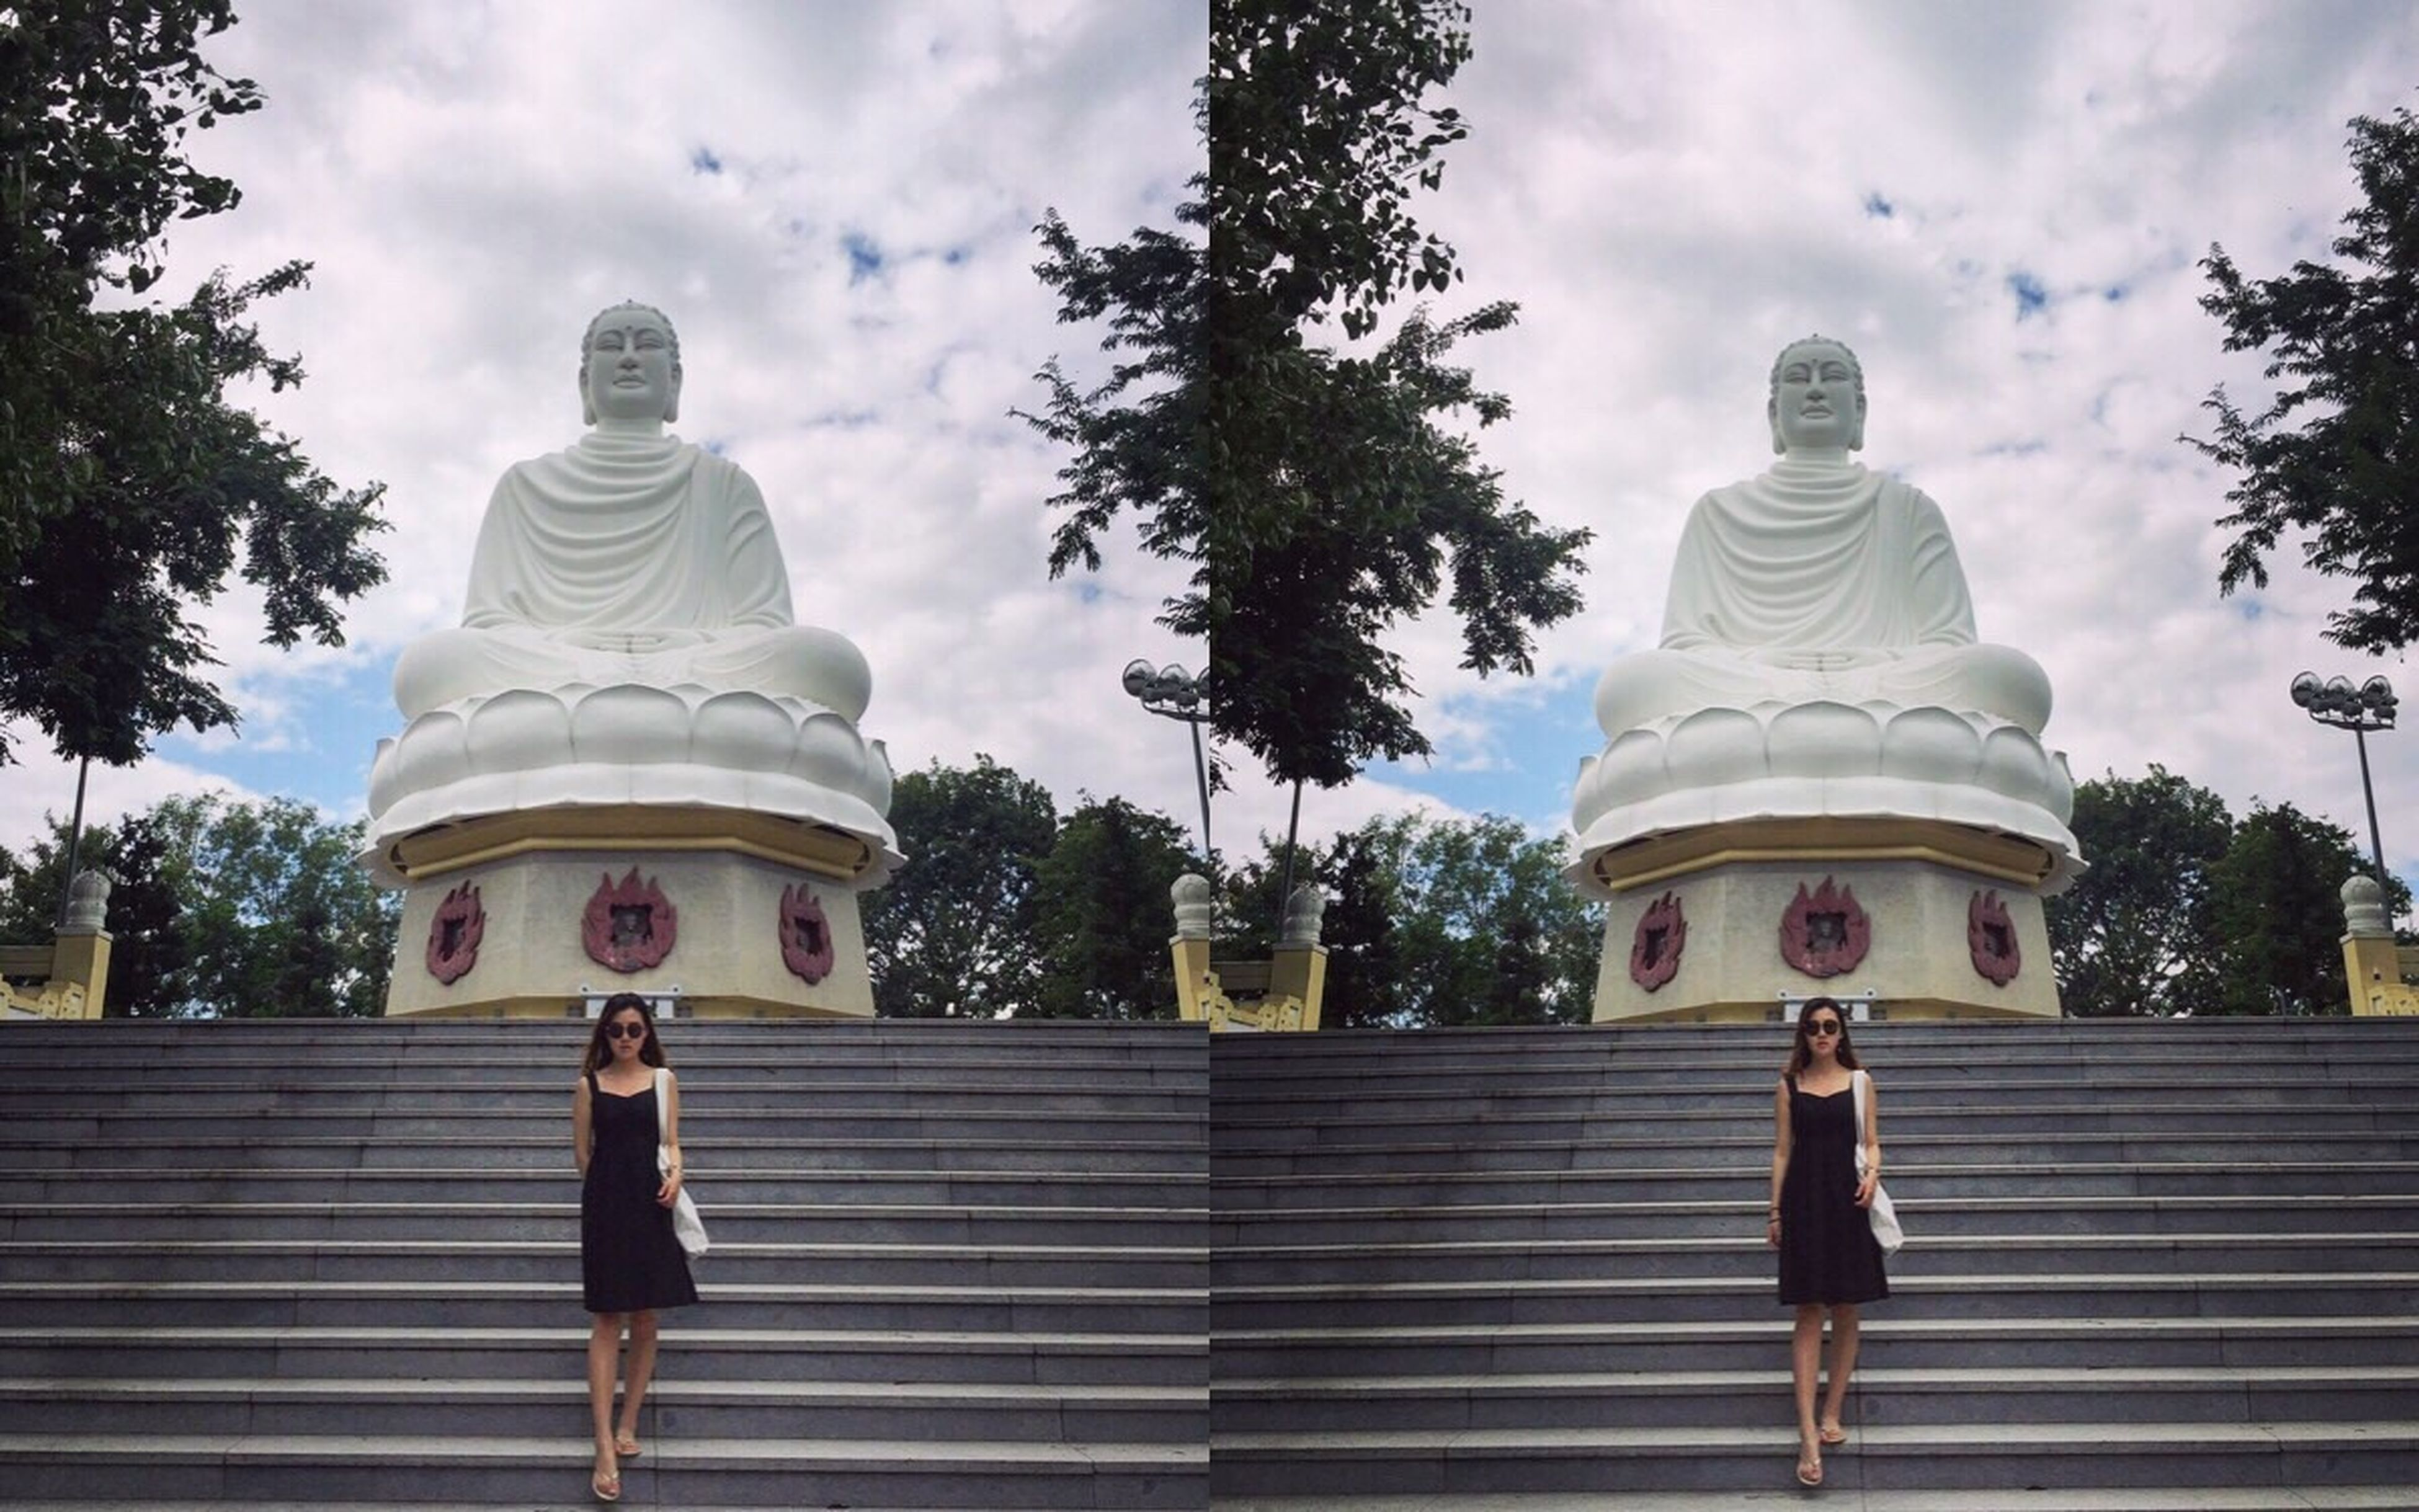 religion, spirituality, place of worship, sky, cloud - sky, travel, pagoda, travel destinations, architecture, outdoors, day, gold colored, building exterior, tree, statue, no people